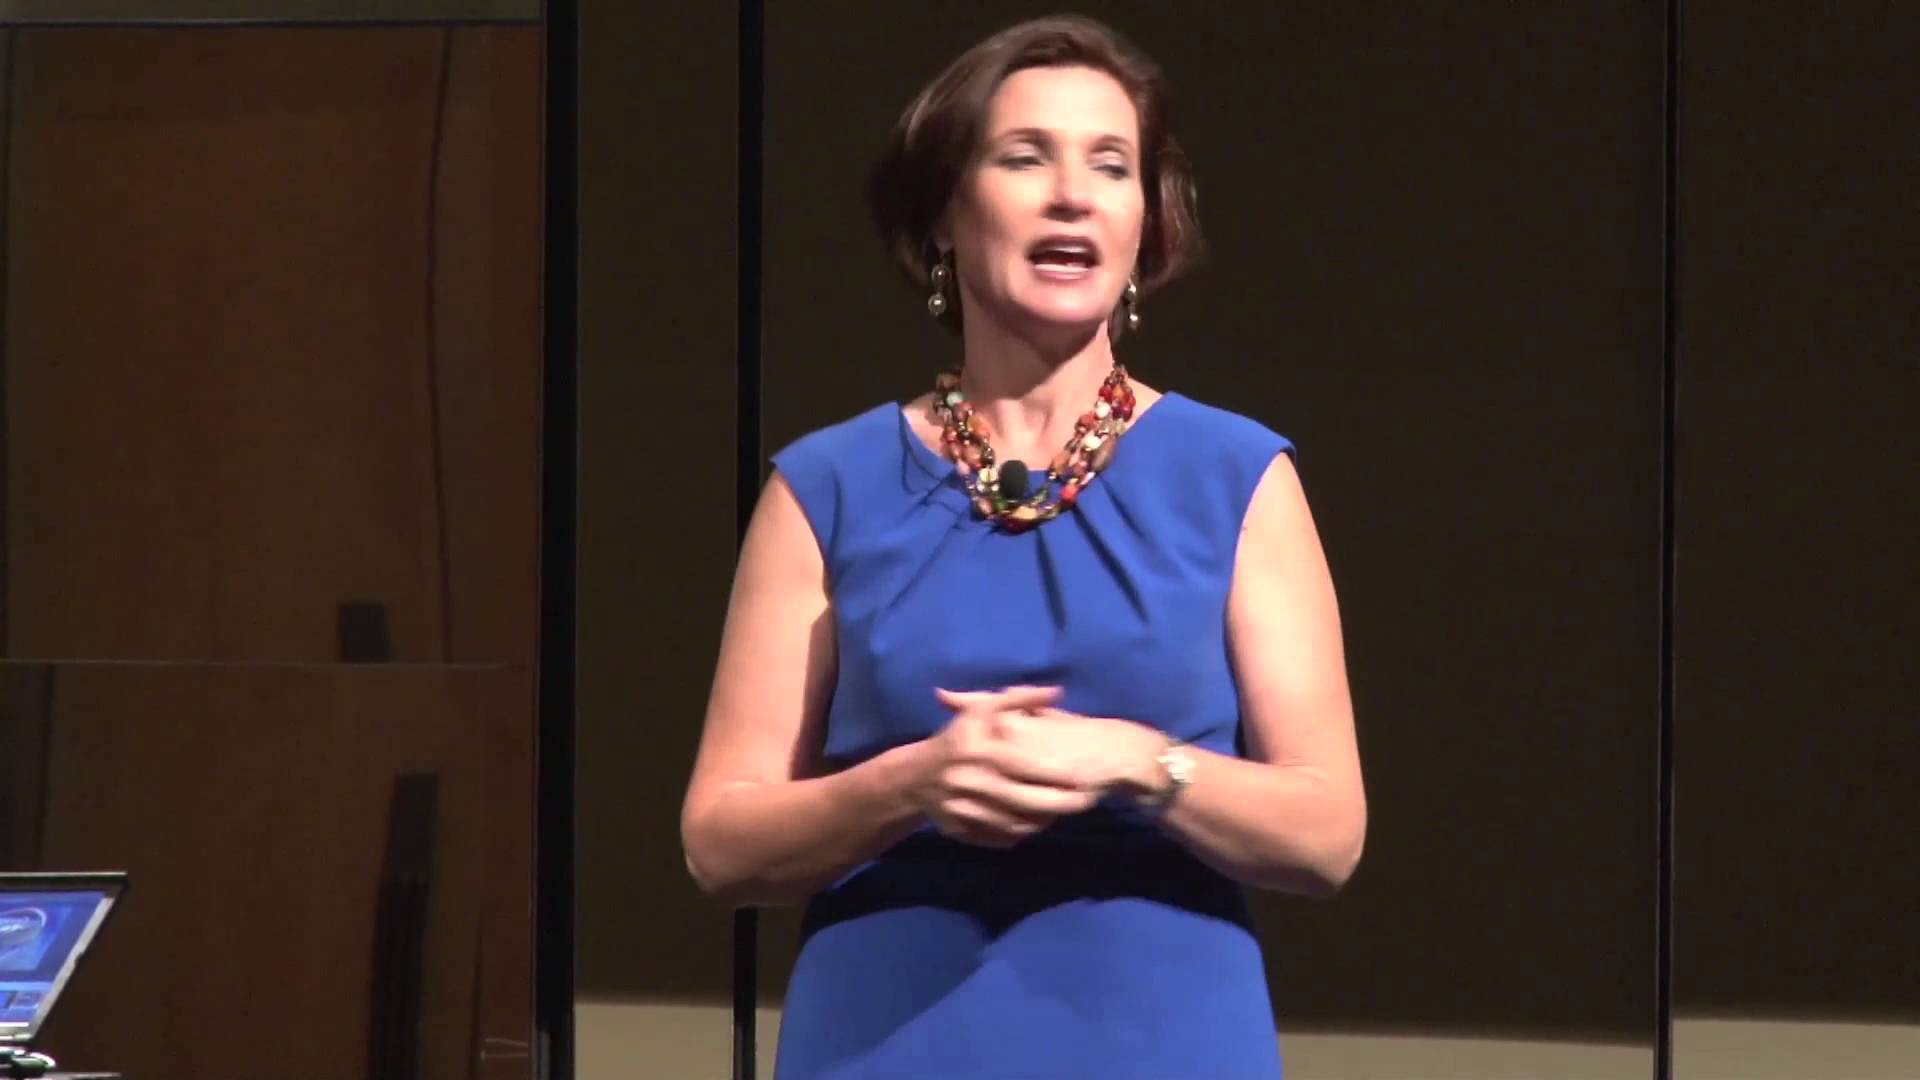 Power: How to own your innate power to affect change